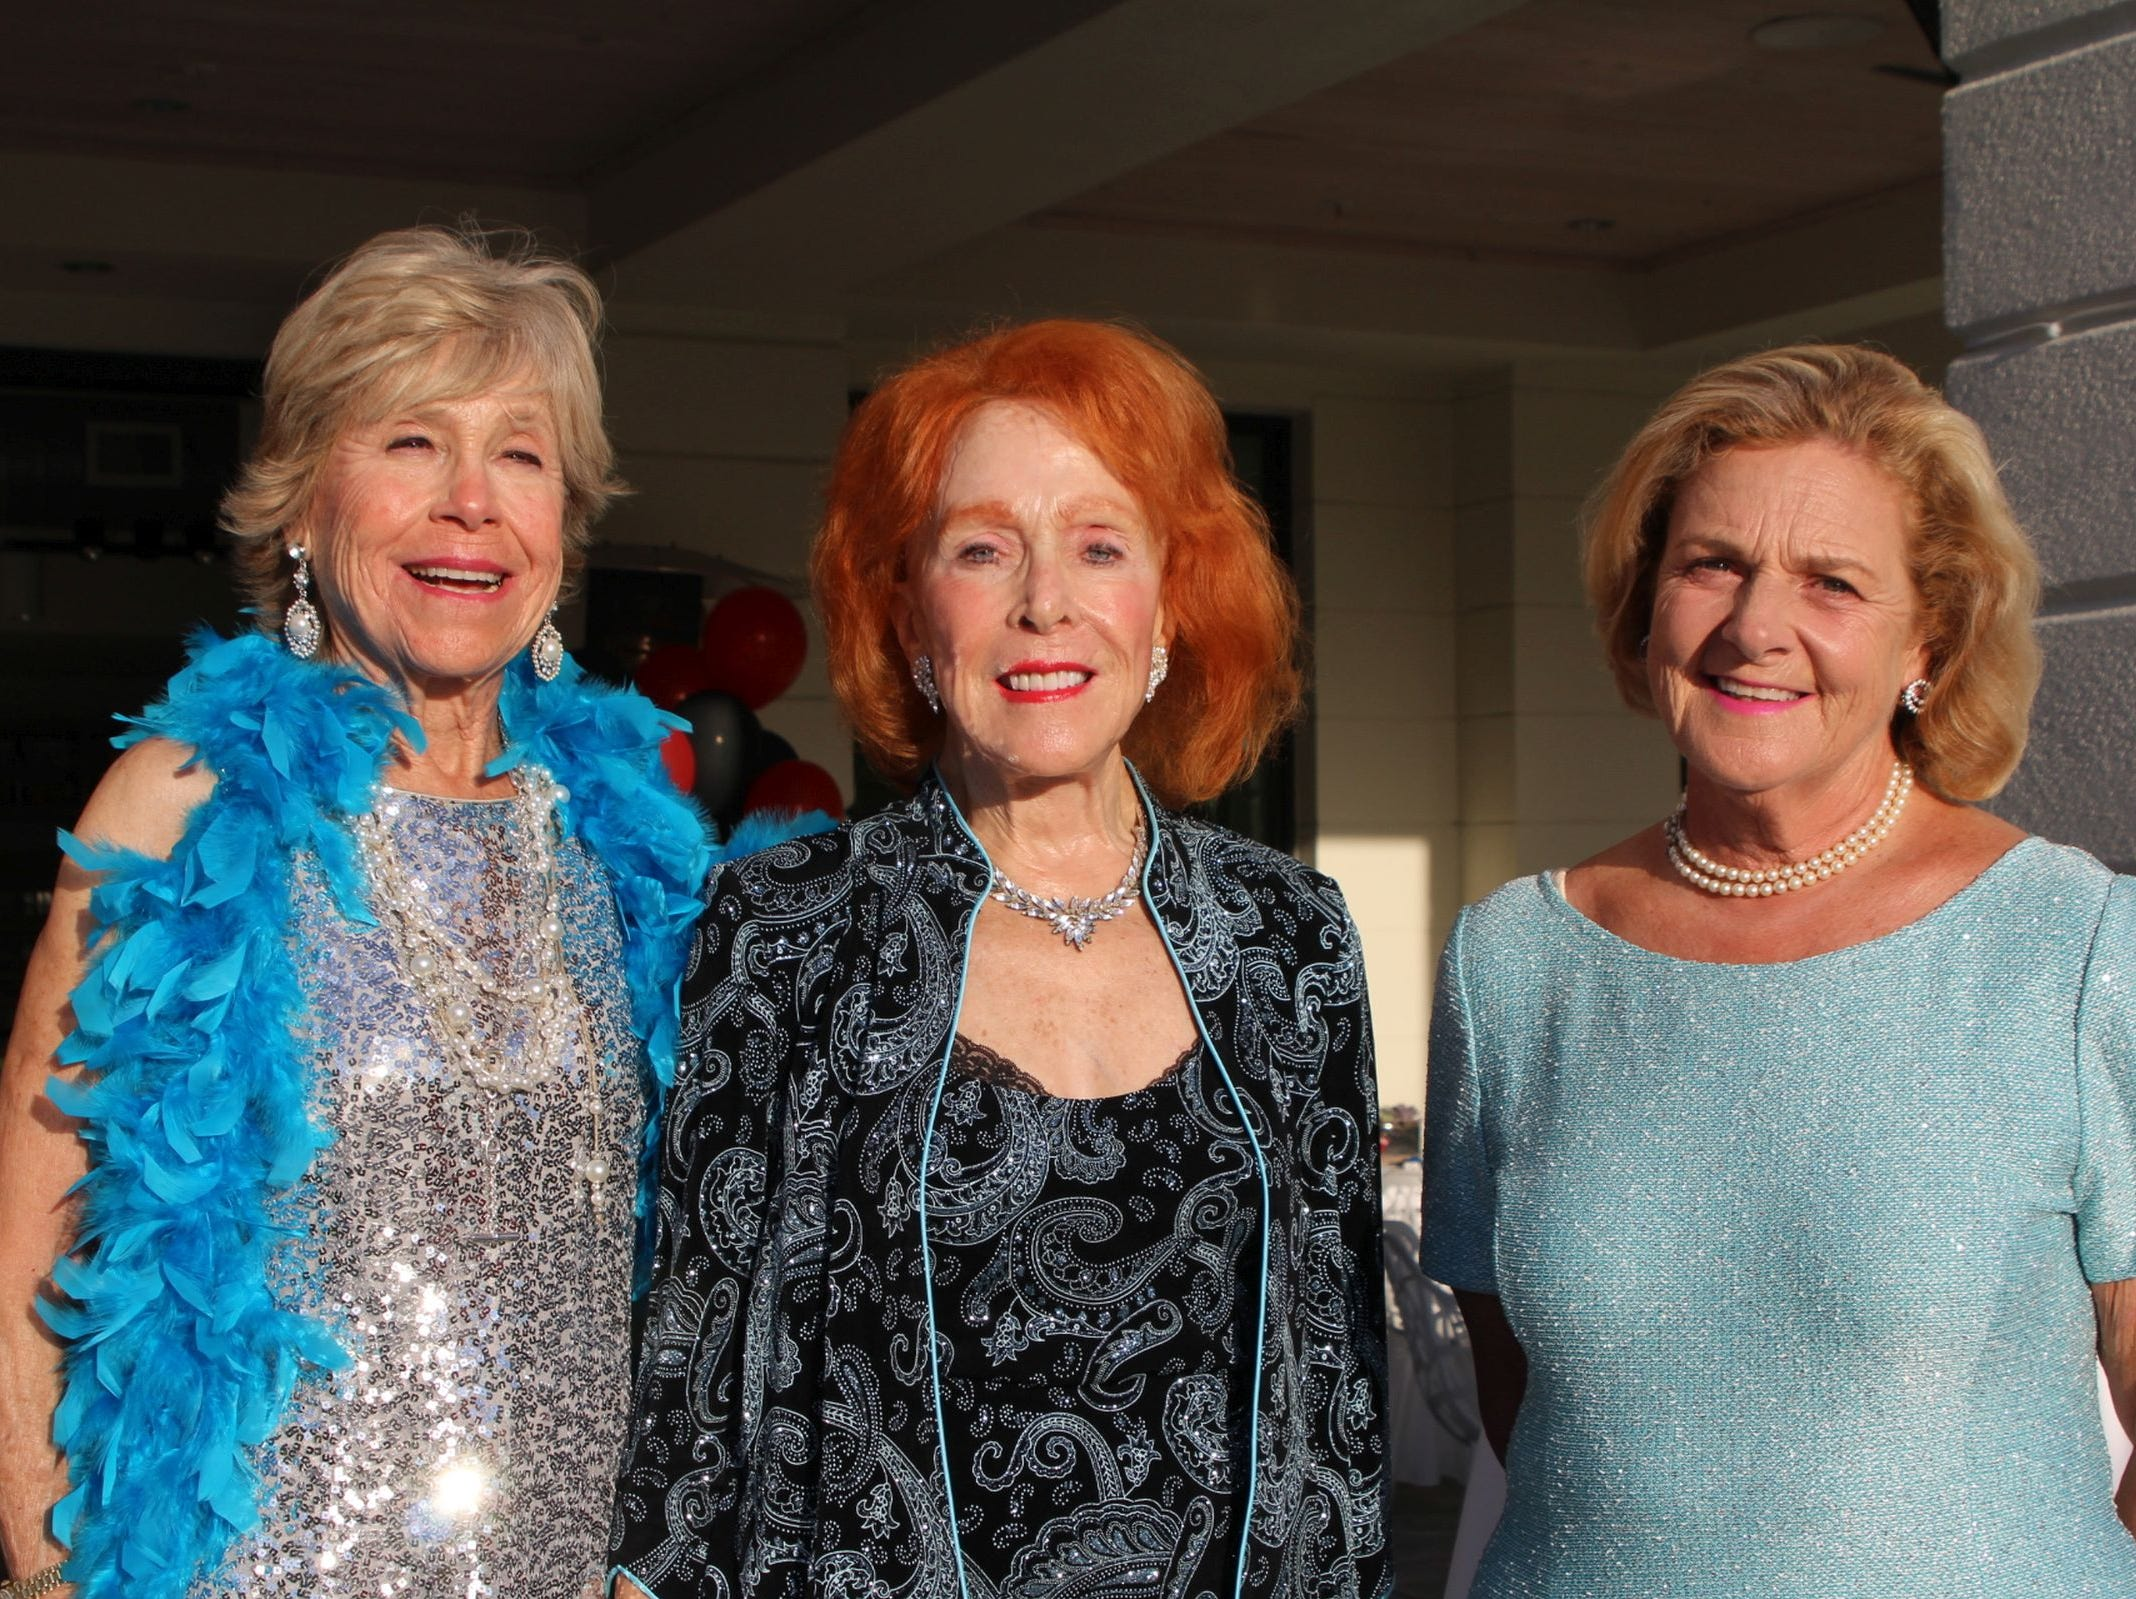 Dee Gordon, left, Barbara Hauptfuhrer and Ellen Mendez-Penate at the John's Island Community Service League's annual gala on March 9.